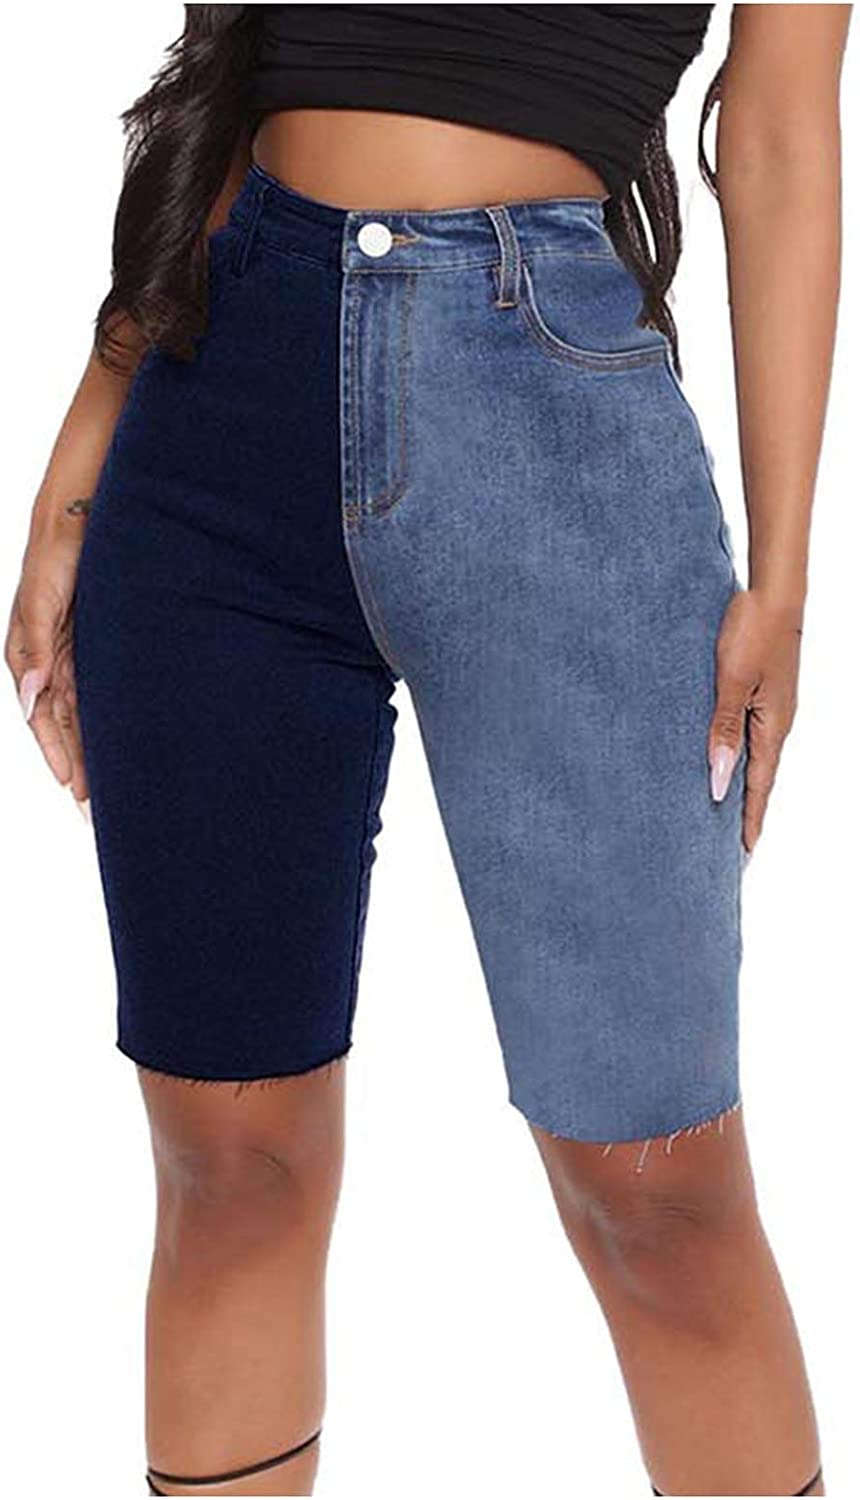 Sexyp-tops Summer Clothes,Women's Casual Denim Splicing Shorts Bottom PantsJeans Shorts for Ladies